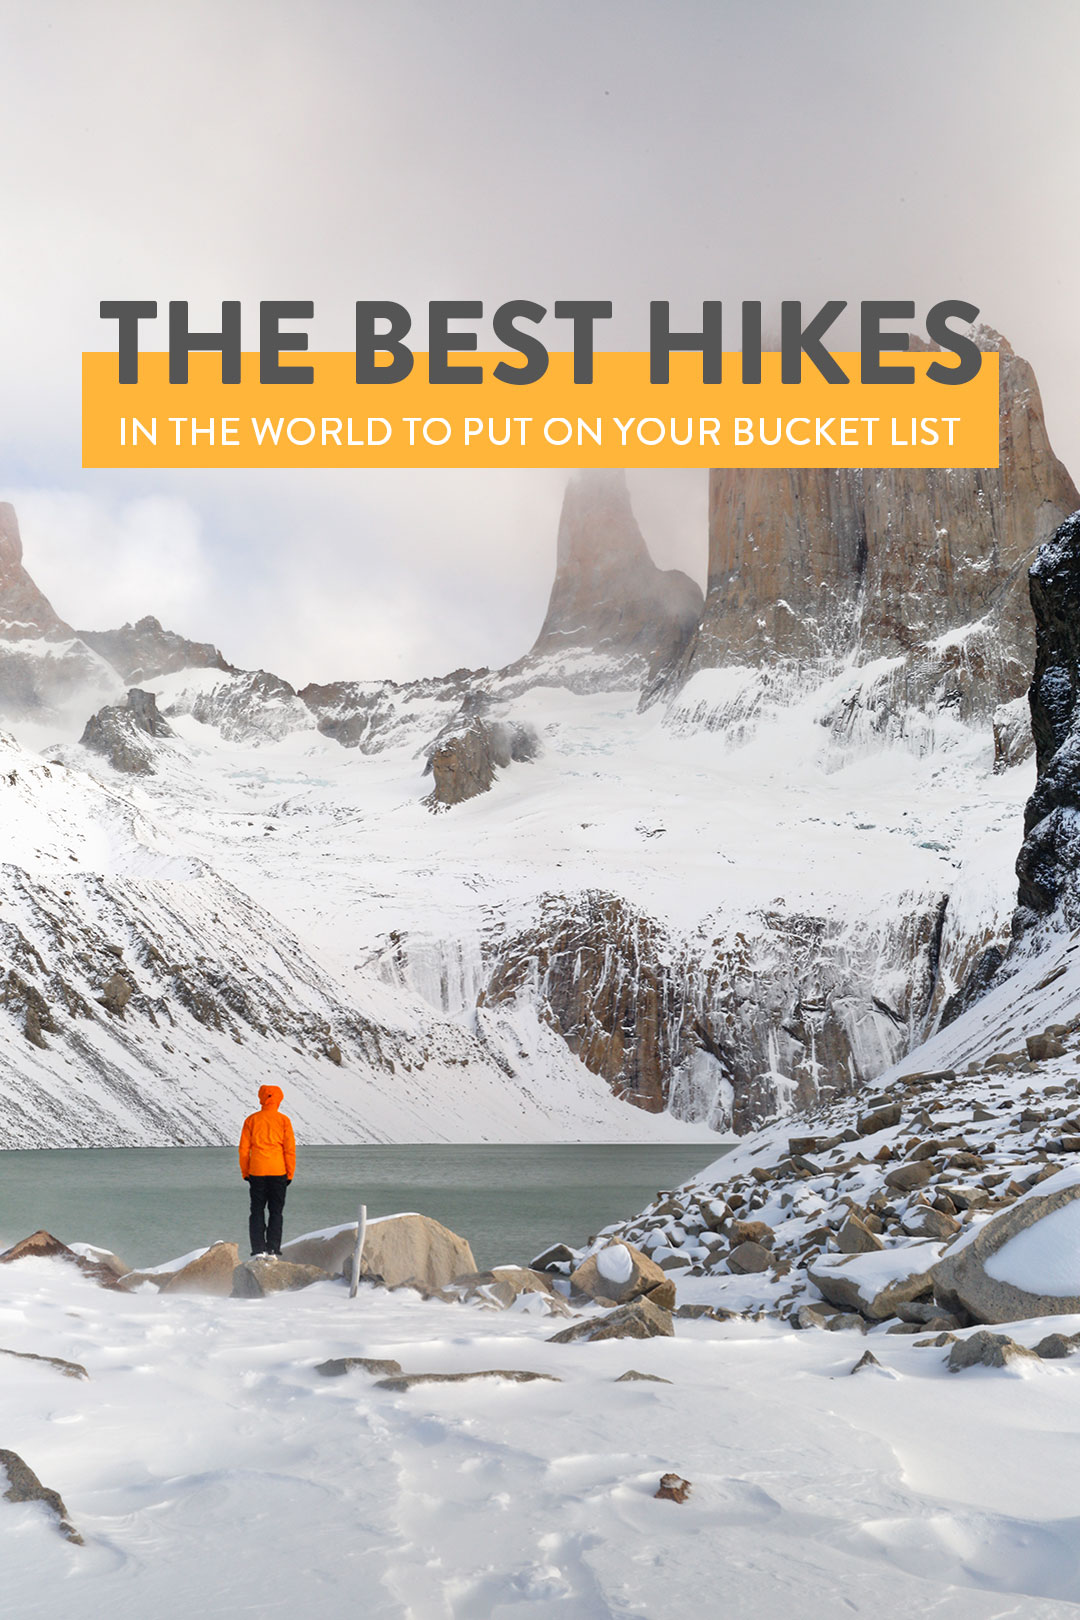 The Best Hikes in the World to Put on Your Bucket List